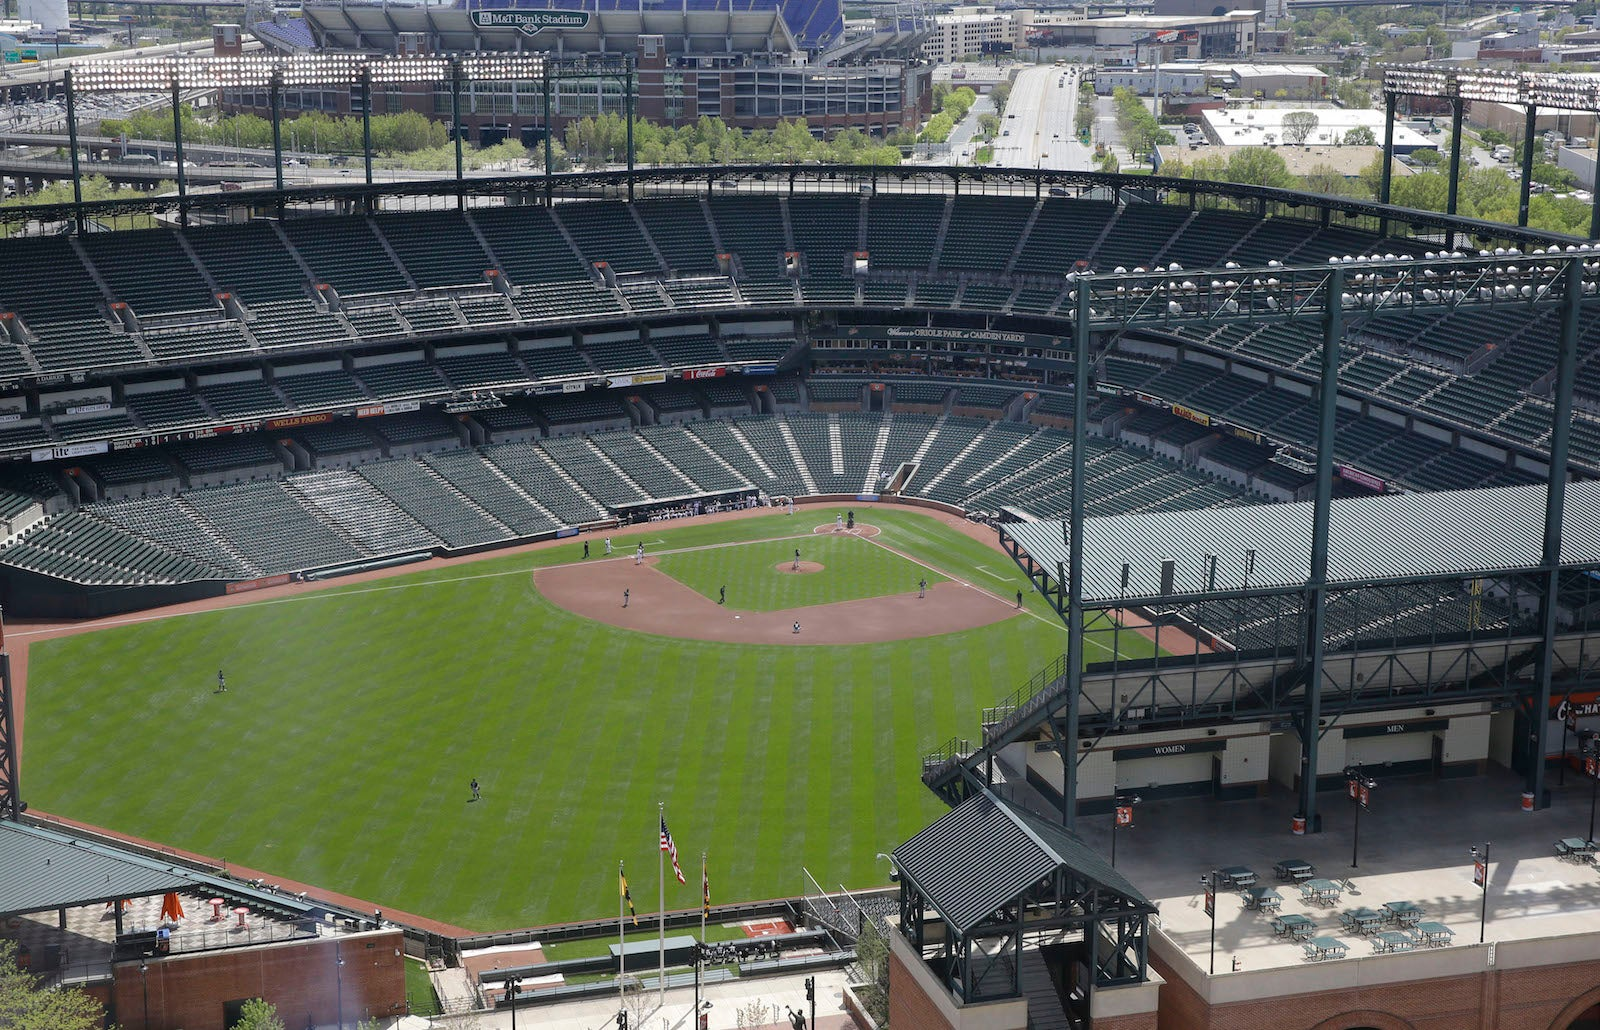 Photos: An empty stadium in Baltimore hosts a MLB baseball game